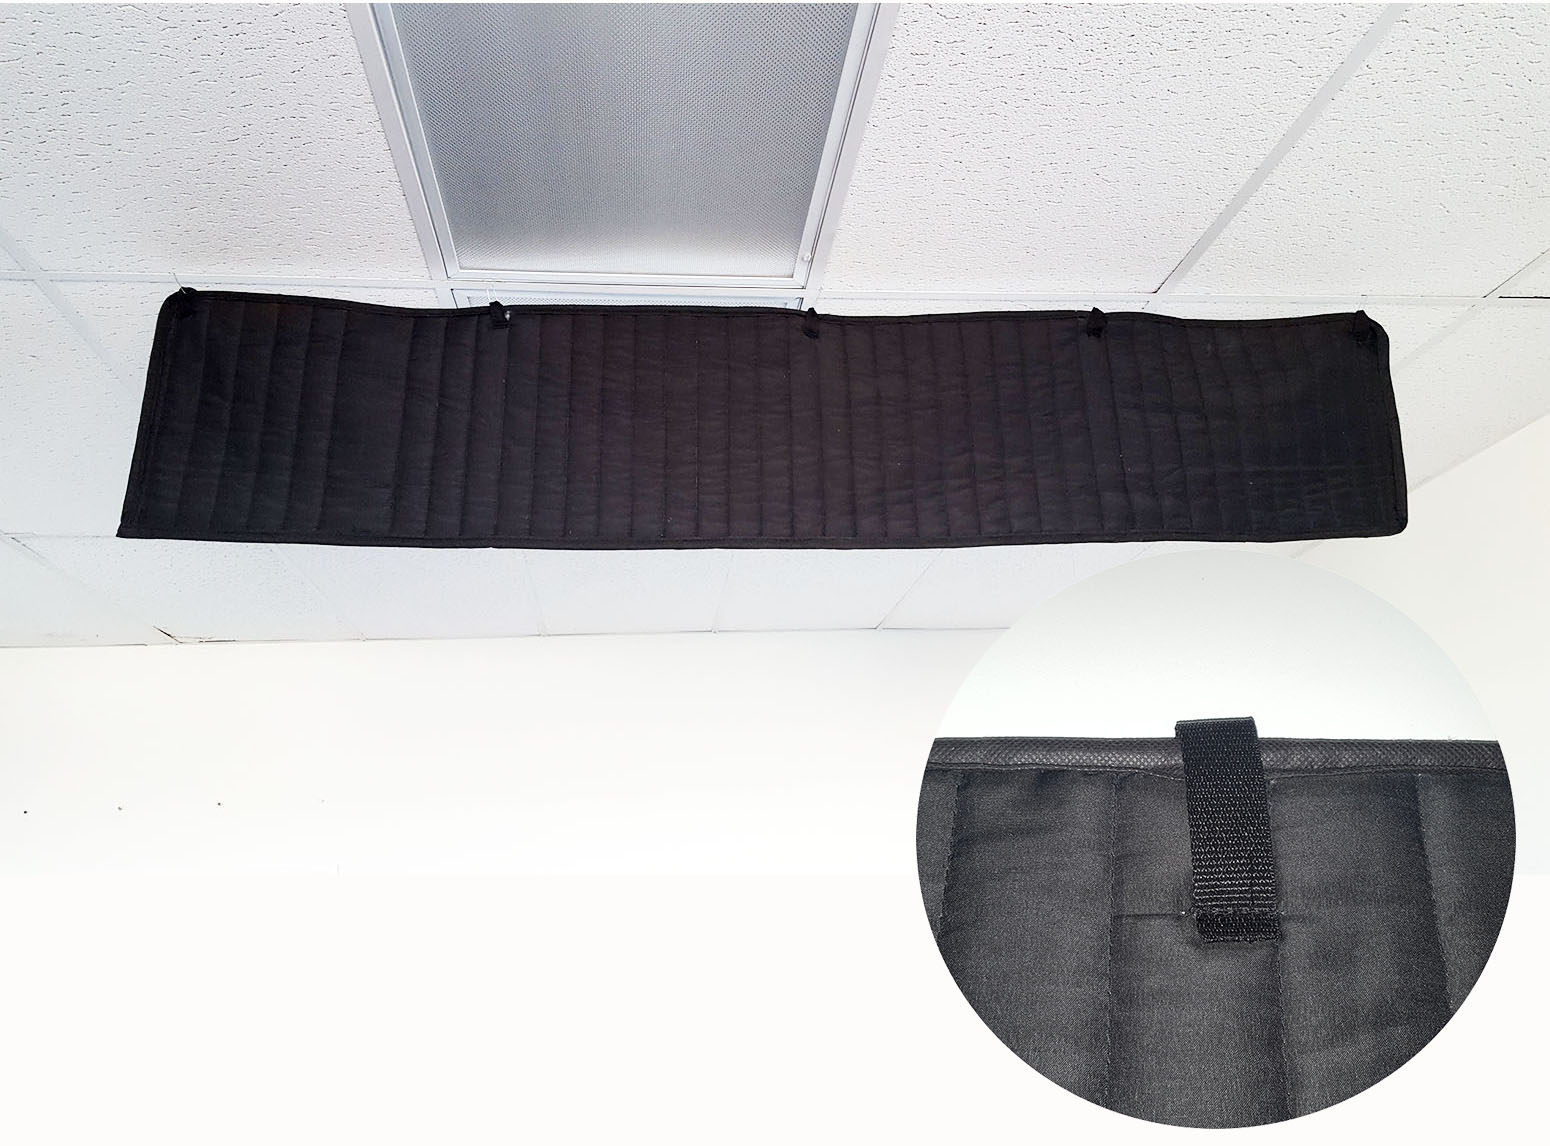 ceiling sound baffle office acoustic treatment-Close up